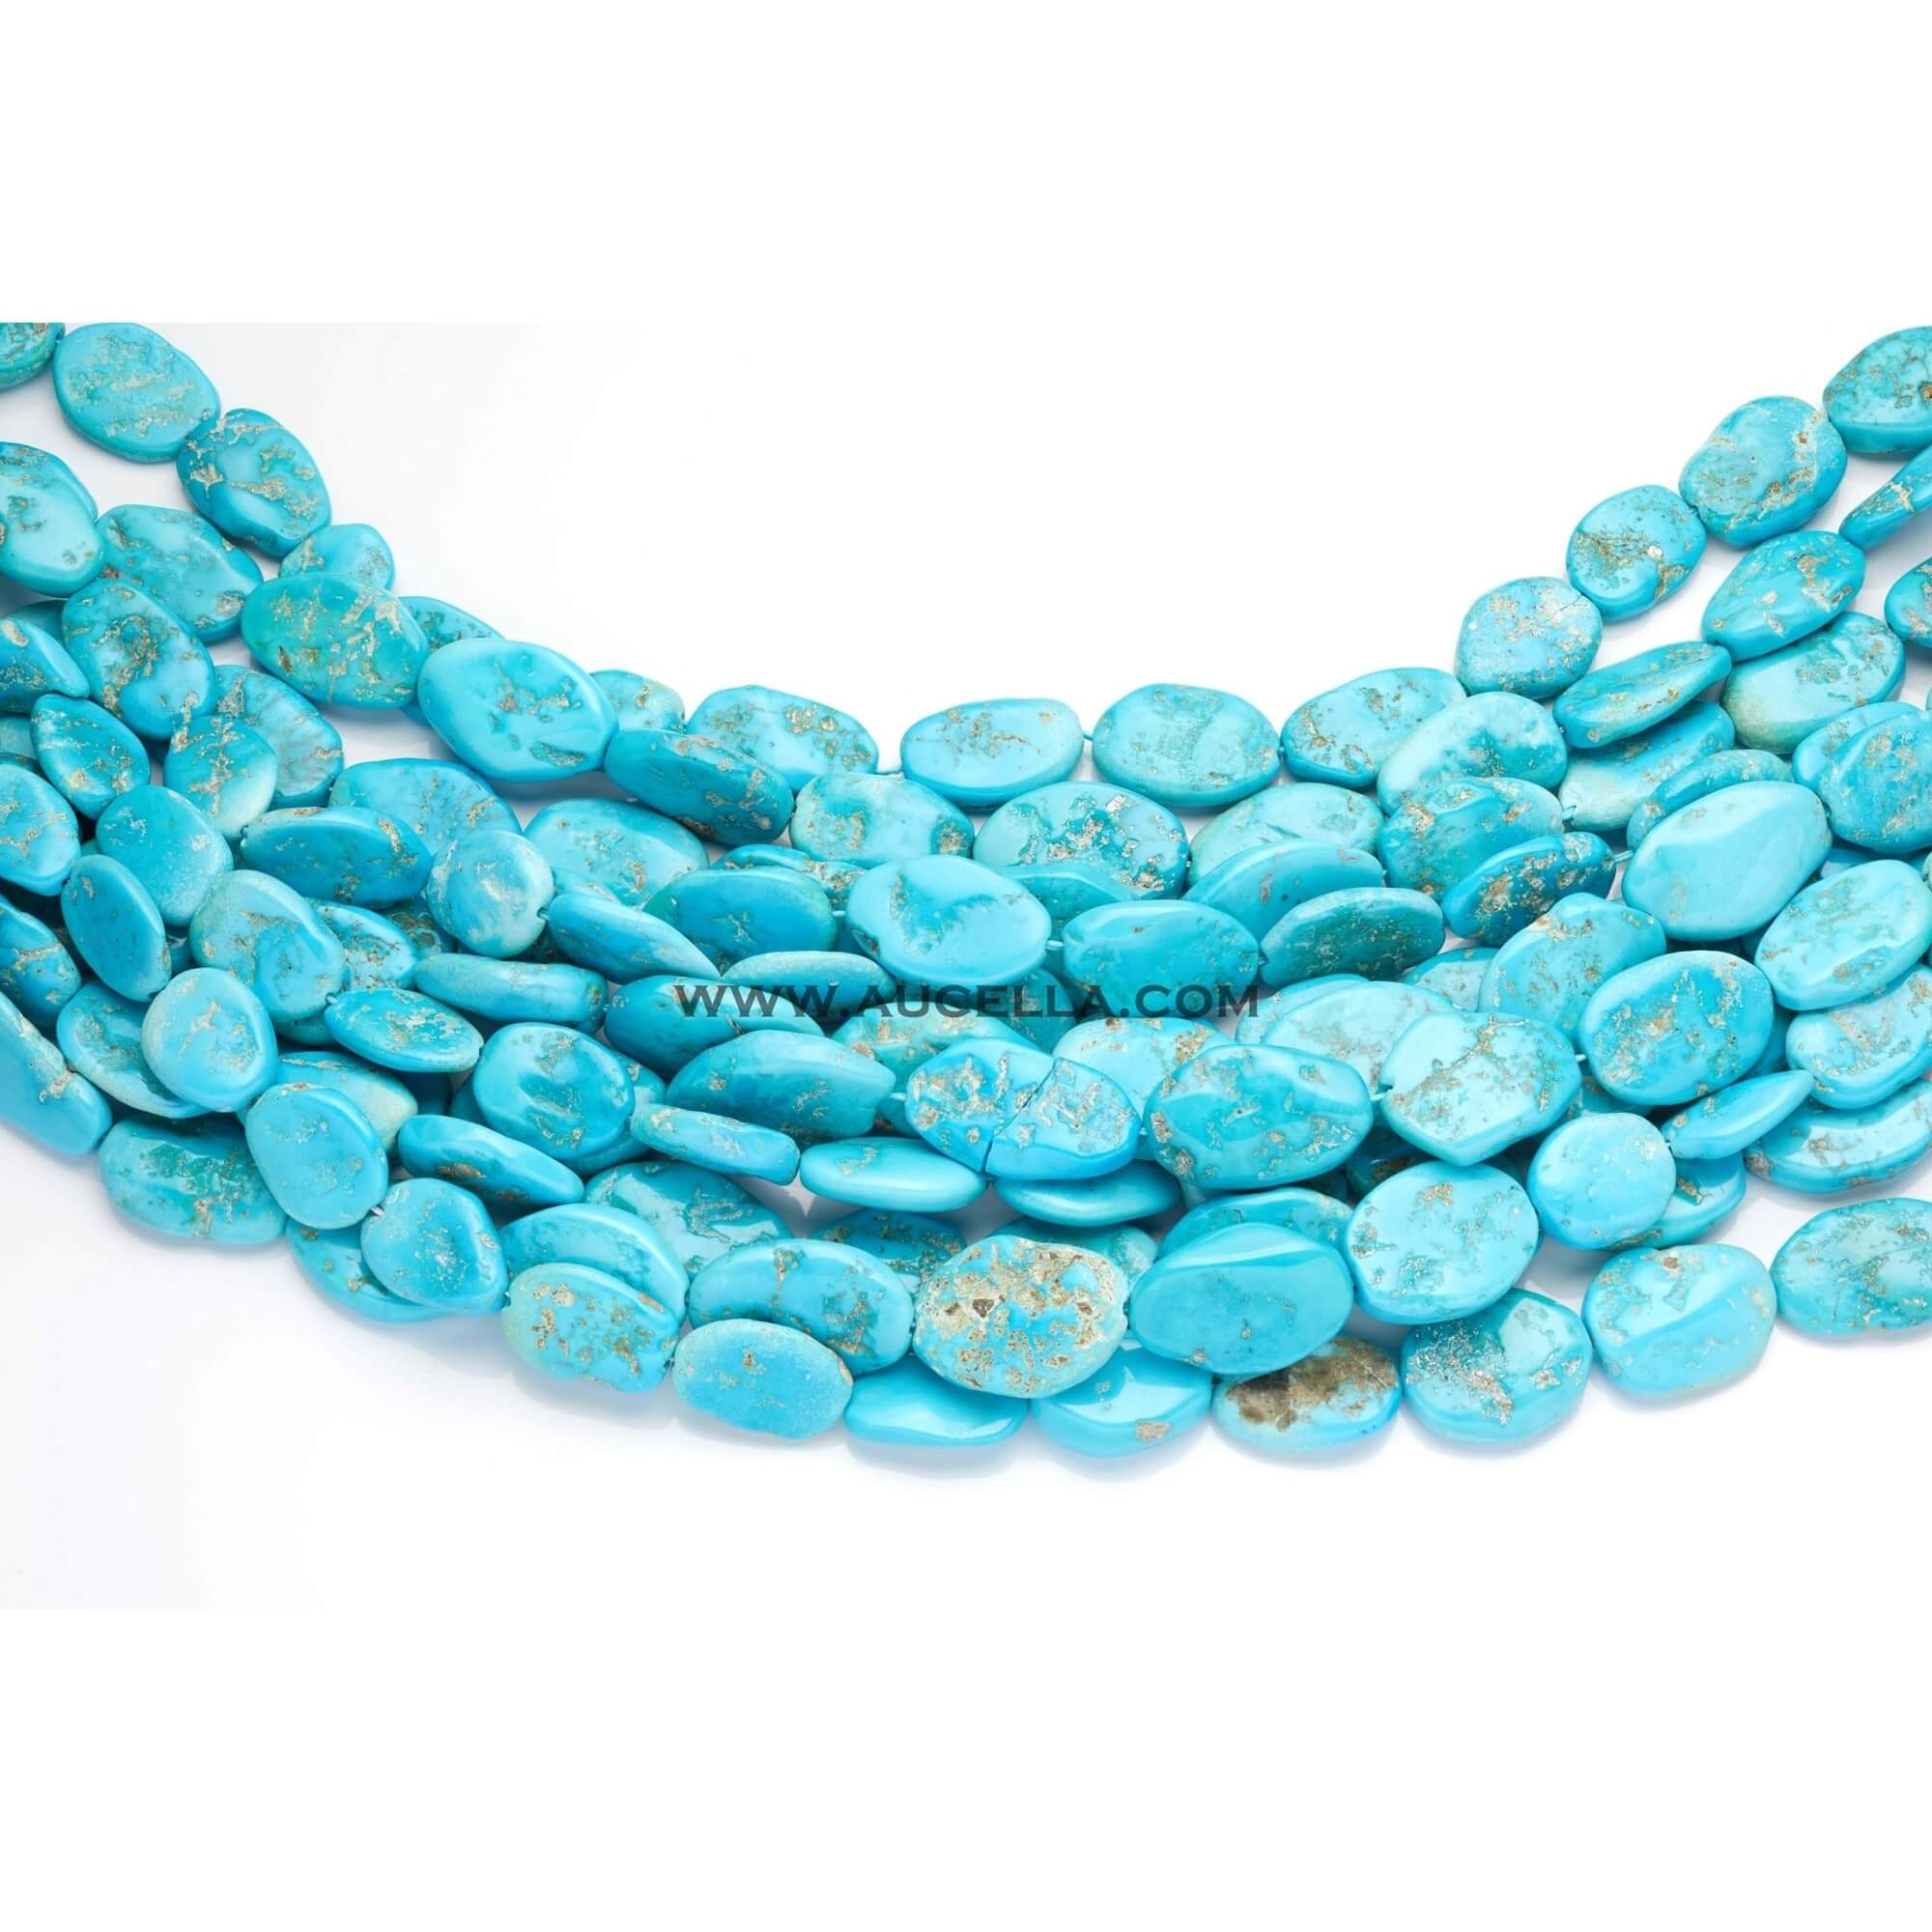 Arizona turquoise crushed nuggets shape